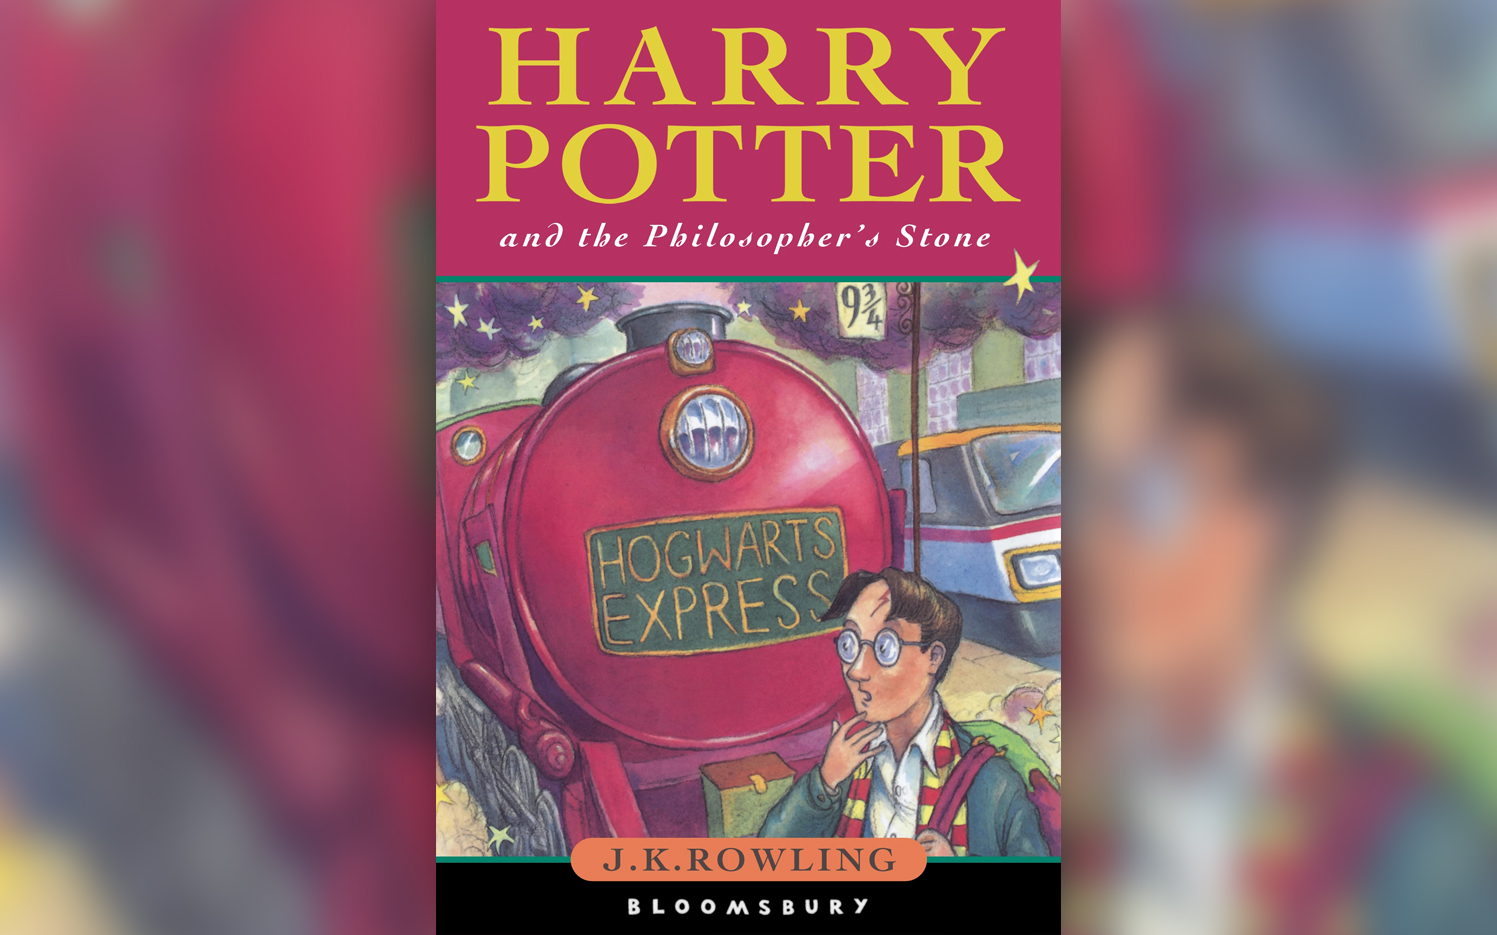 'Harry Potter and the Philosopher's Stone' by J.K. Rowling